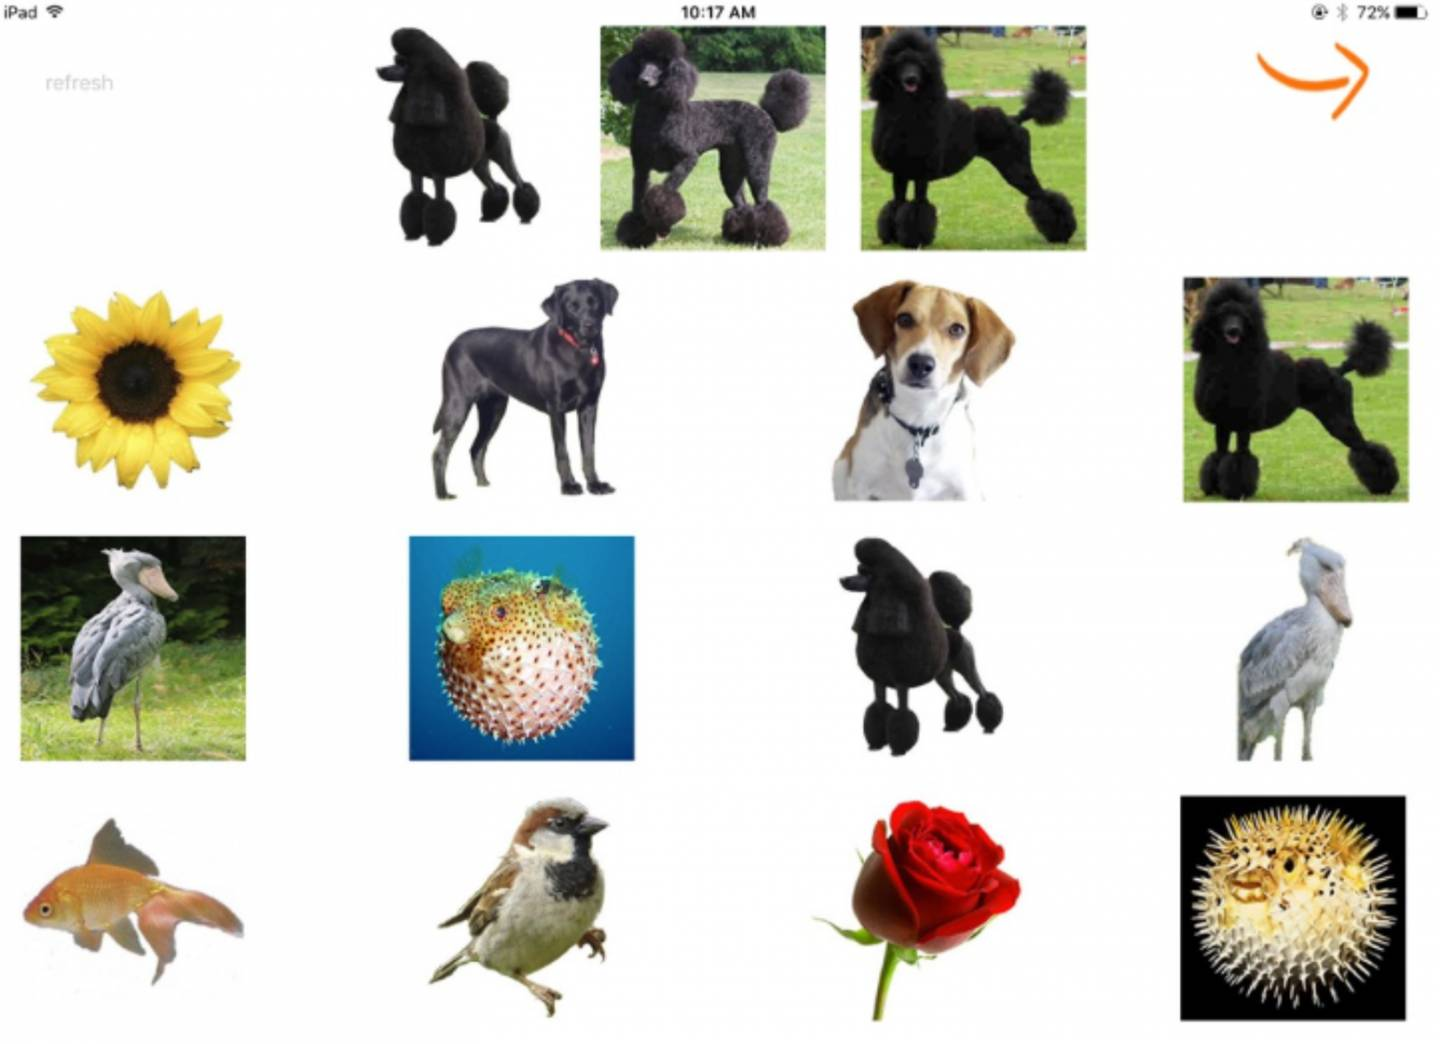 Images of dogs and various other animals and plants